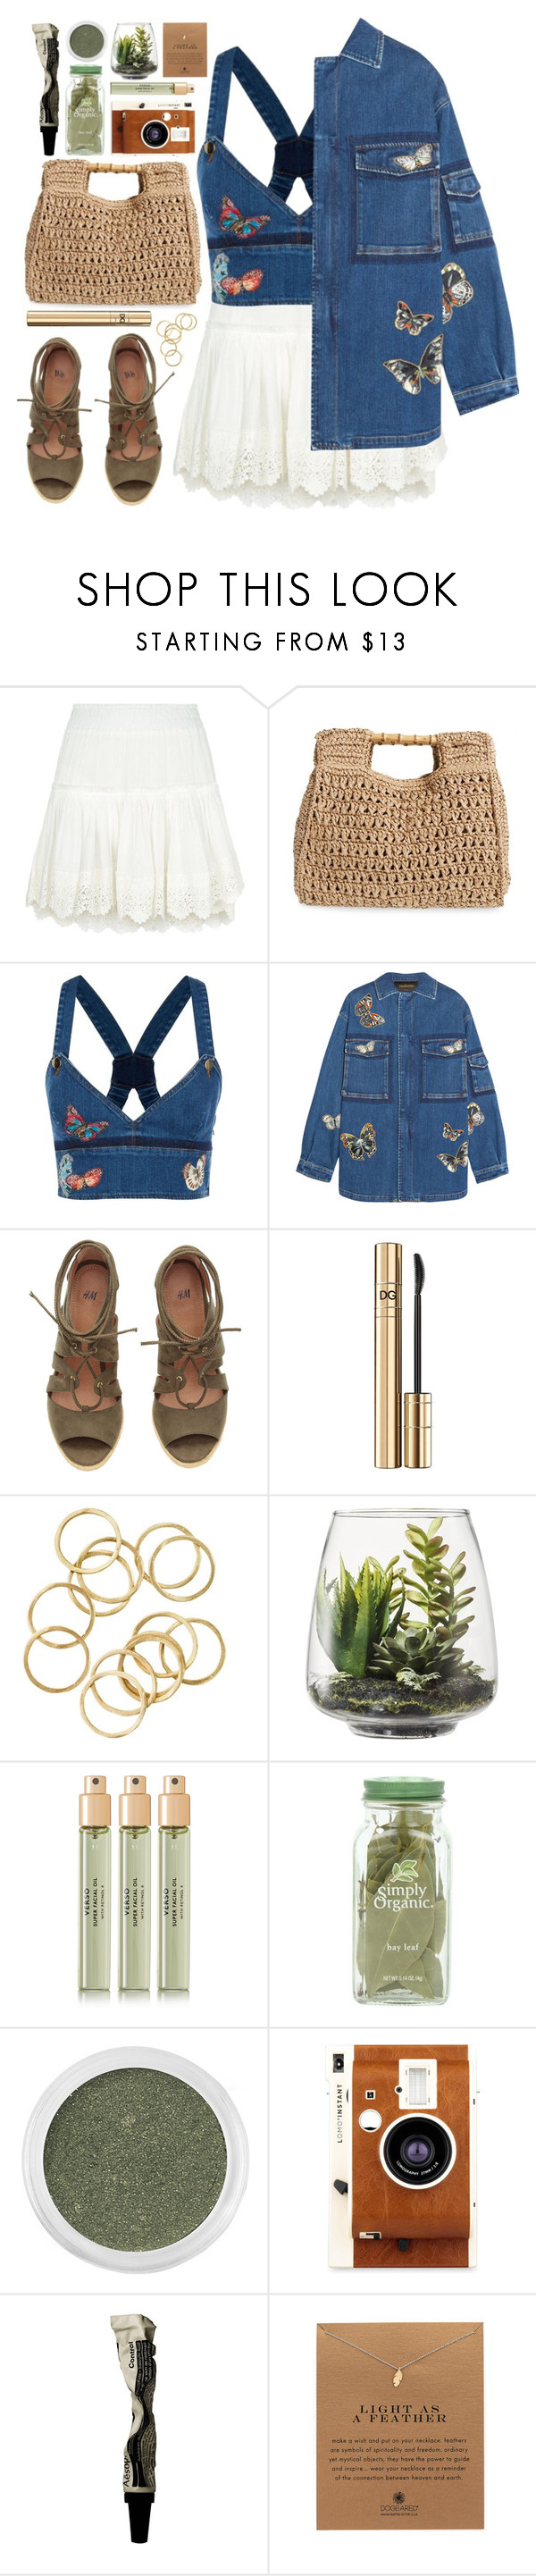 """#959 Petunia"" by blueberrylexie ❤ liked on Polyvore featuring Misa, San Diego Hat Co., Valentino, D&G, Threshold, Verso, Bare Escentuals, LØMO, Aesop and Dogeared"